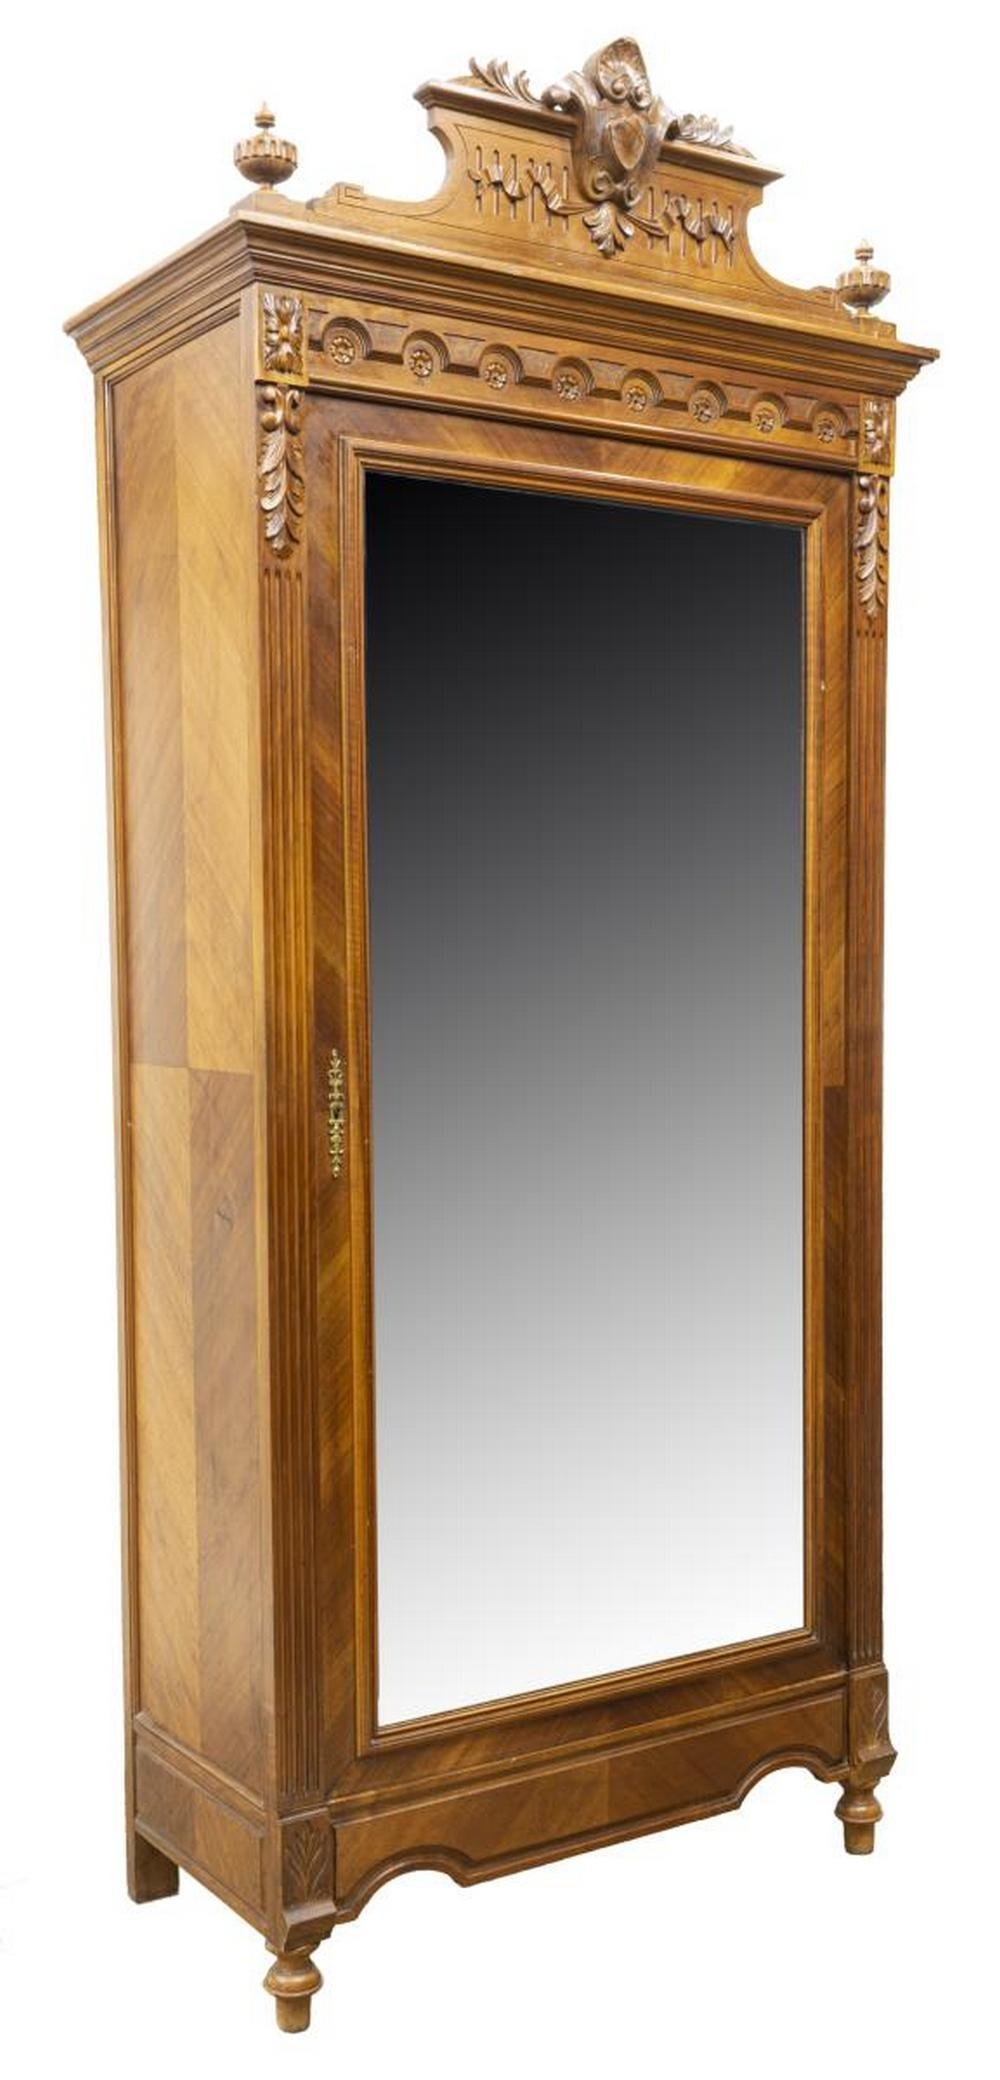 FRENCH HENRI II STYLE WALNUT MIRRORED ARMOIRE